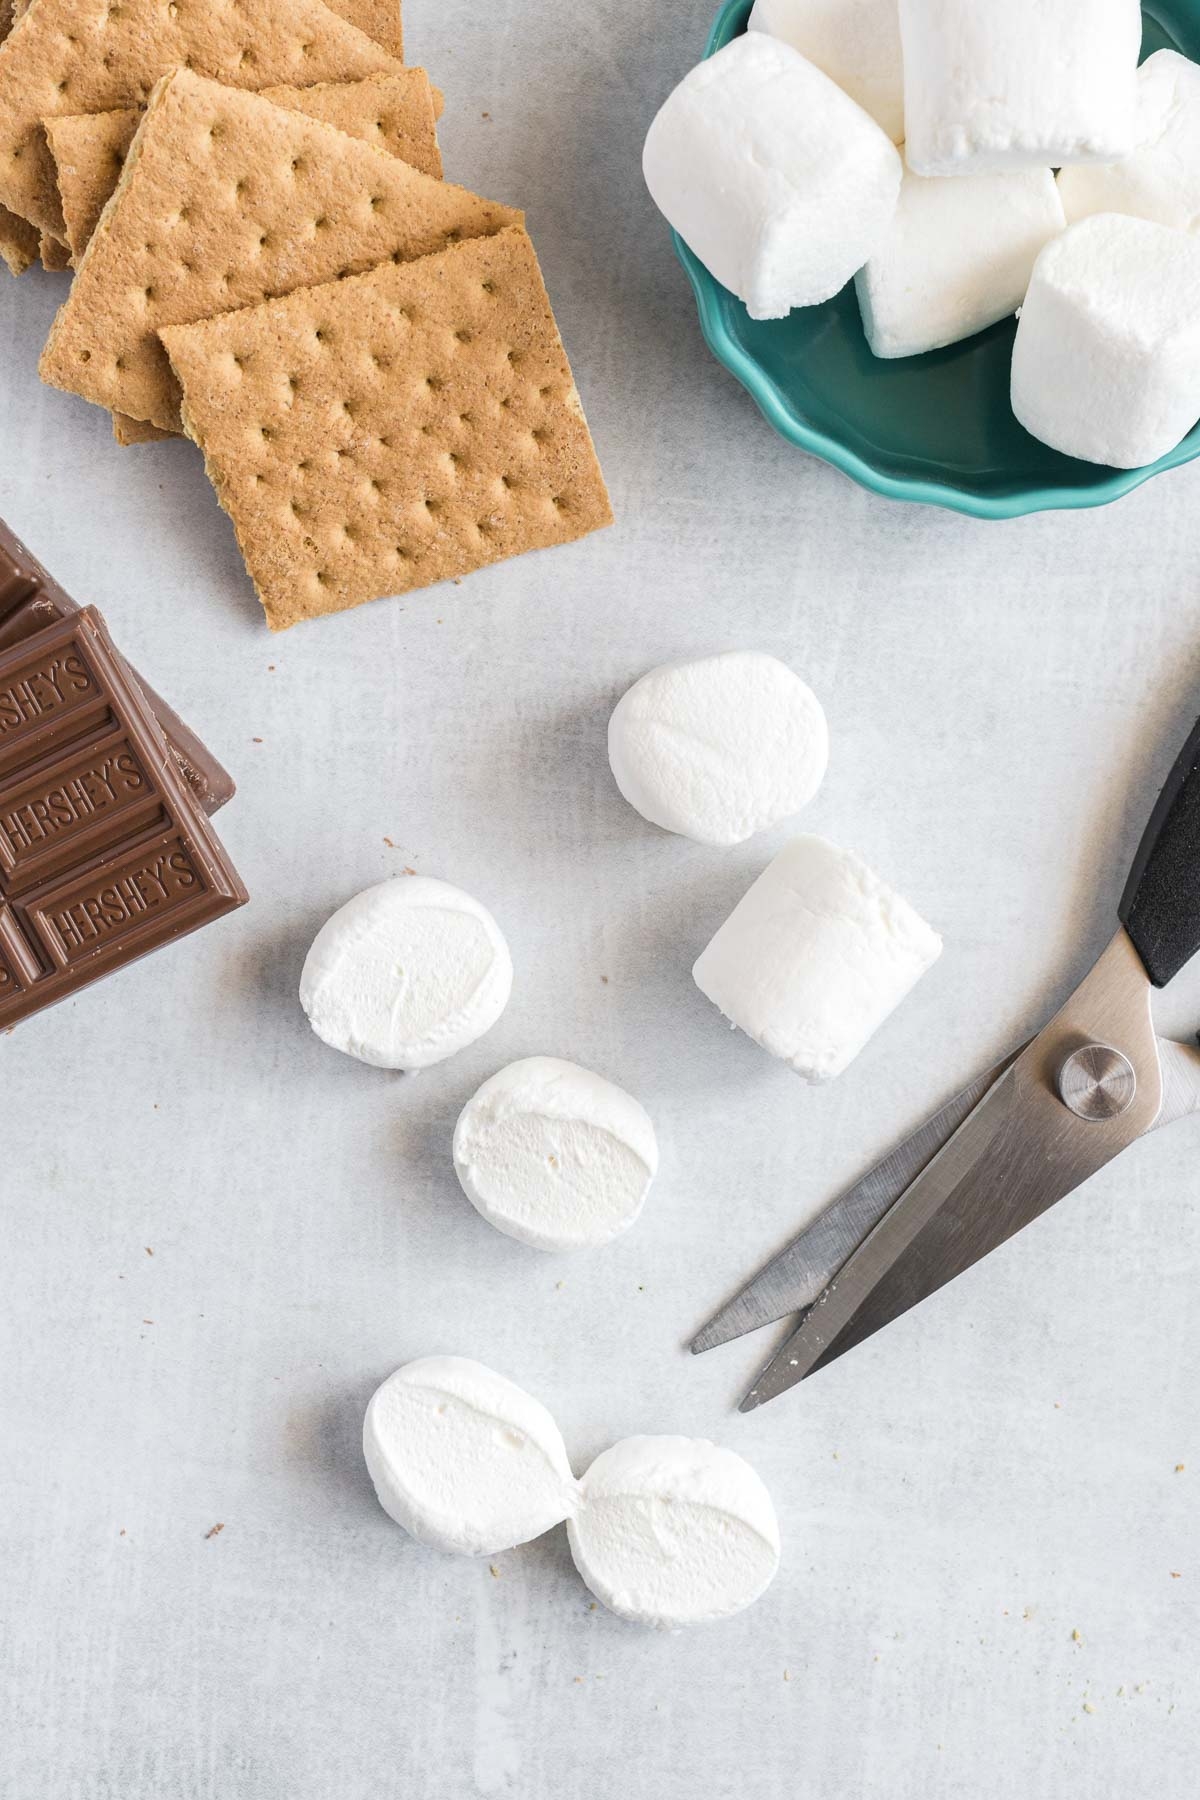 A stack of graham crackers and a bowl of marshmallows. Two marshmallows are cut in half and kitchen scissors are beside them.